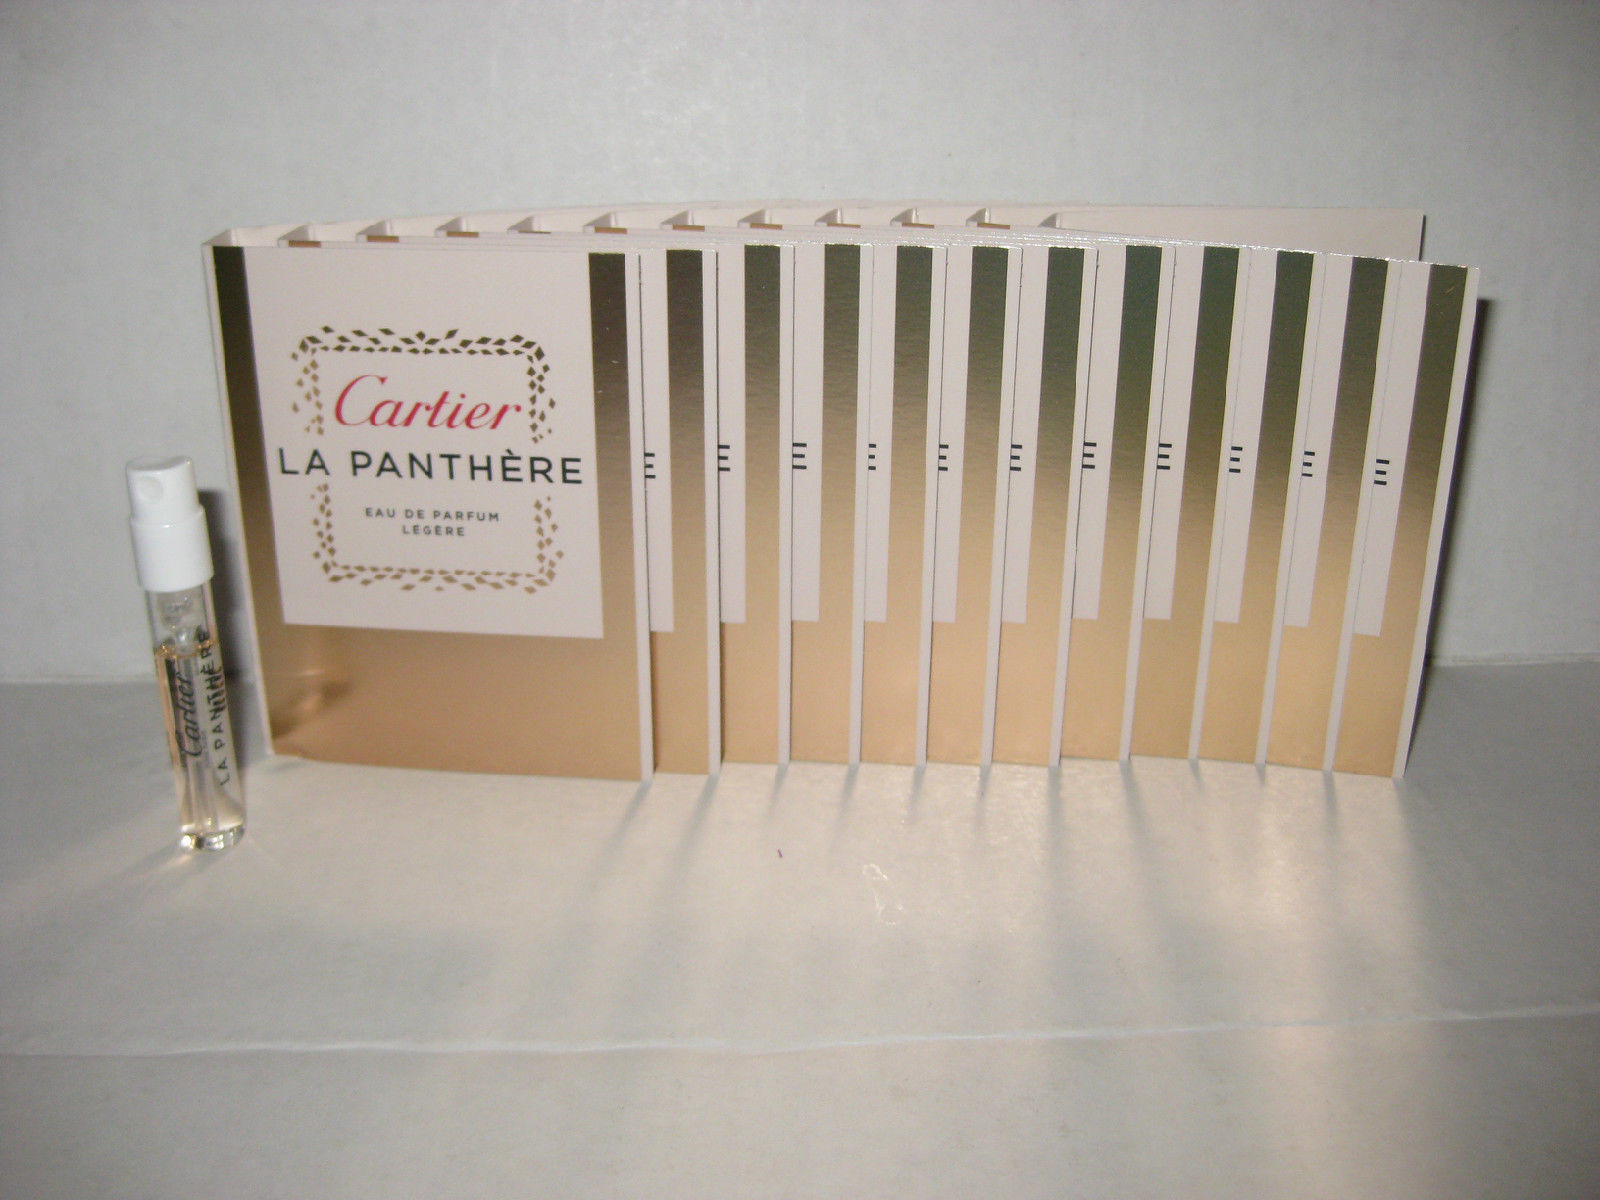 12 x La Panthere Legere by Cartier 1.5ml. Eau De Parfum Women Spray Sample Vial image 1